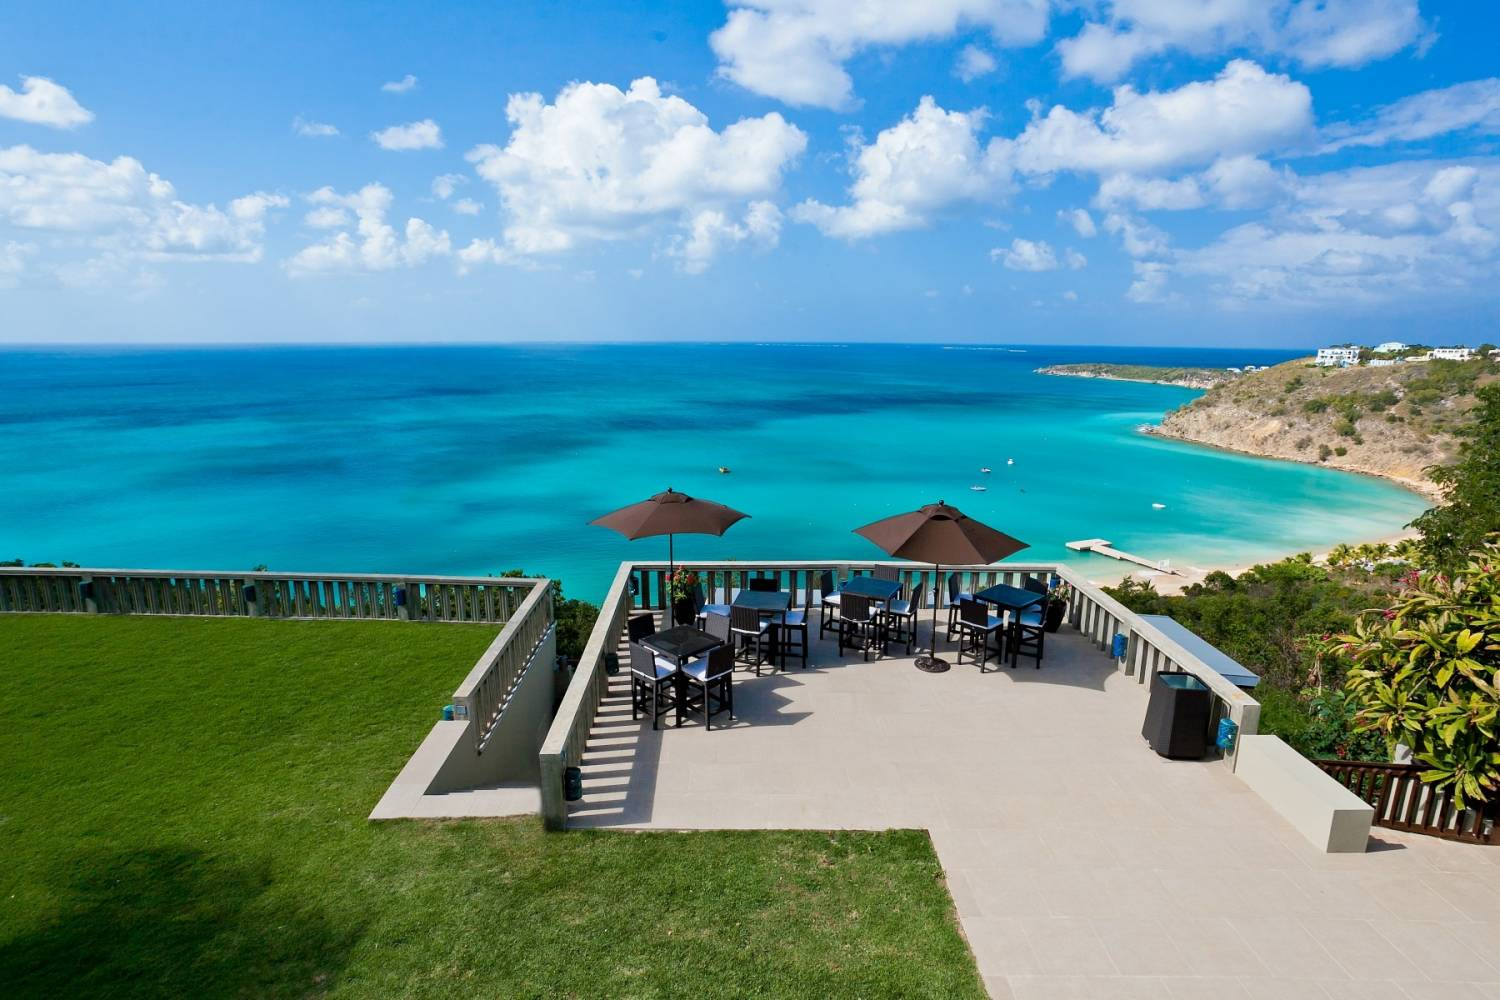 Enjoy every second of Crocus Bay, Anguilla. Book a Private Chef for the ultimate dinning experience, header